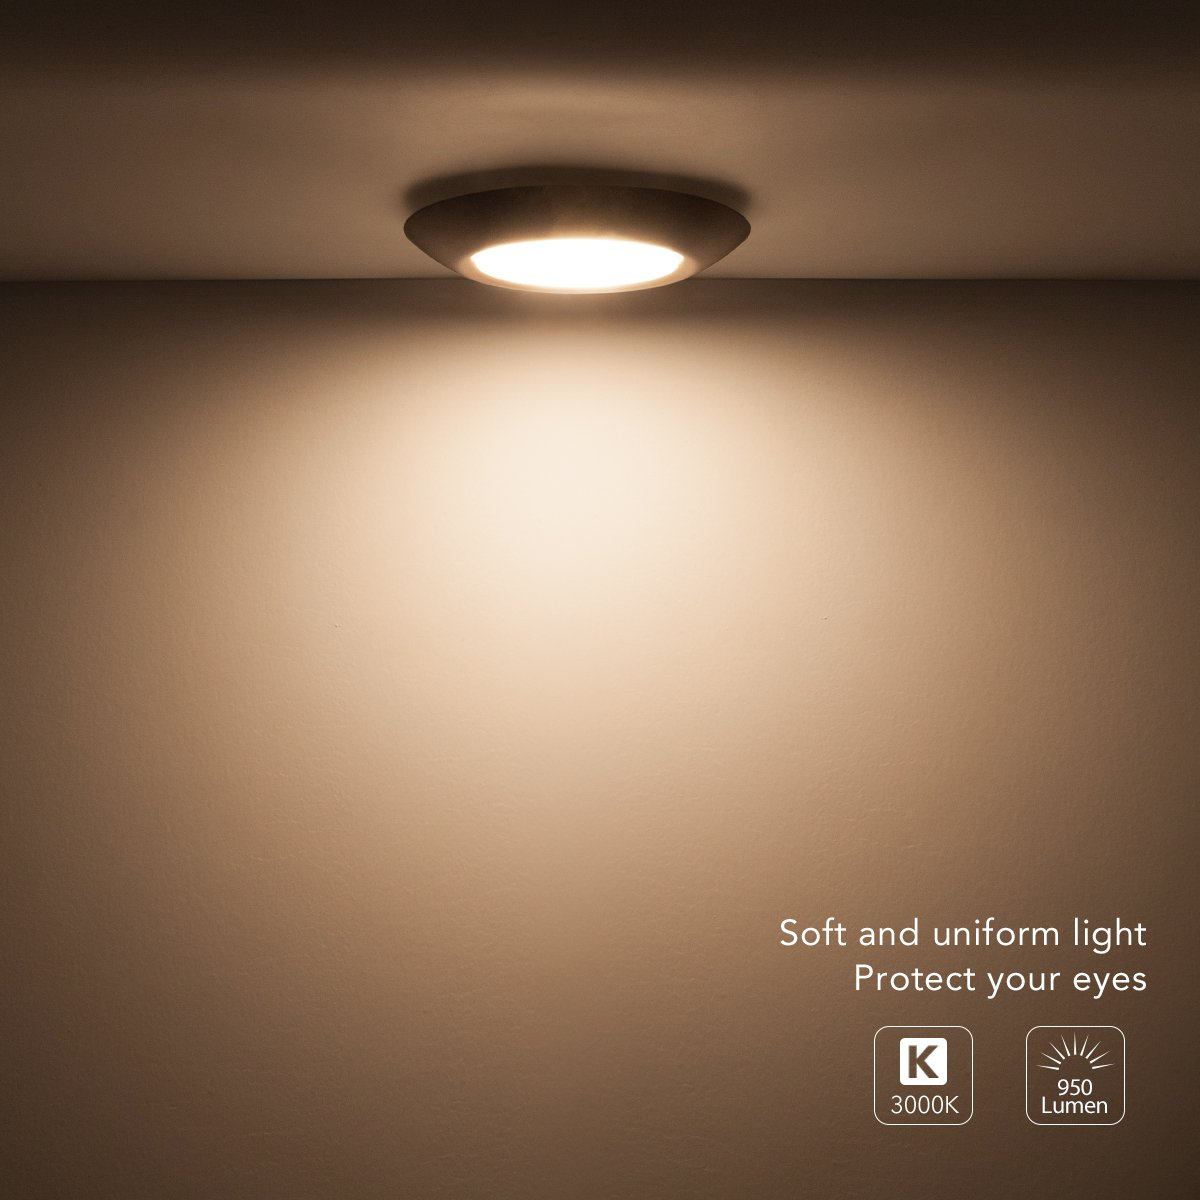 SOLLA 7.5 inch Dimmable LED Disk Light Flush Mount Ceiling Fixture with ETL FCC Listed, 950LM, 15W (90W Equiv.), Warm White, 3000K, Bronze Finish, Ultra-Thin, Round LED Light for Home, Hotel,Office by SOLLA (Image #3)